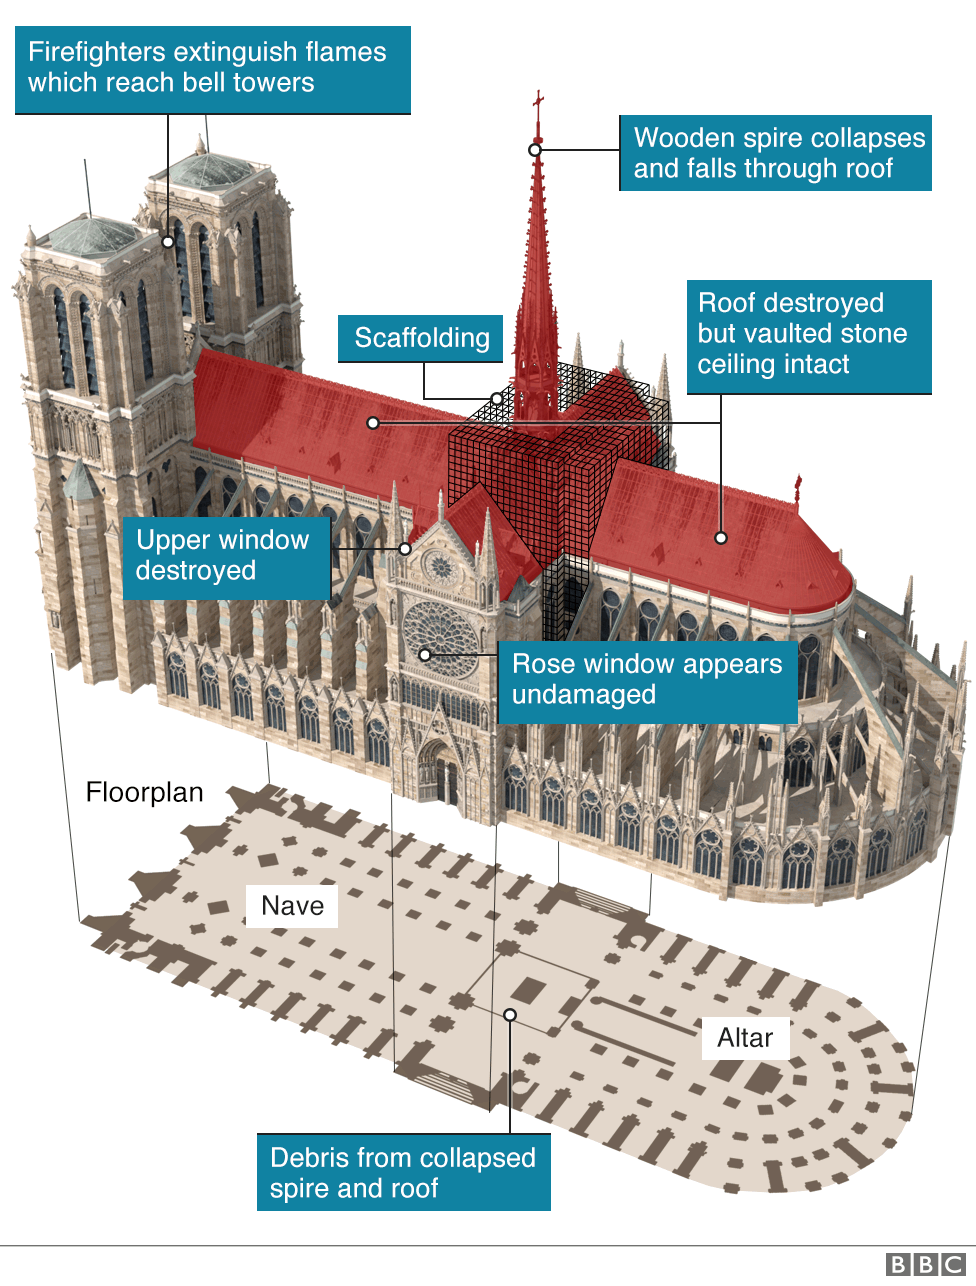 Notre Dame Fire International Call For Architects To Design New Spire Bbc News